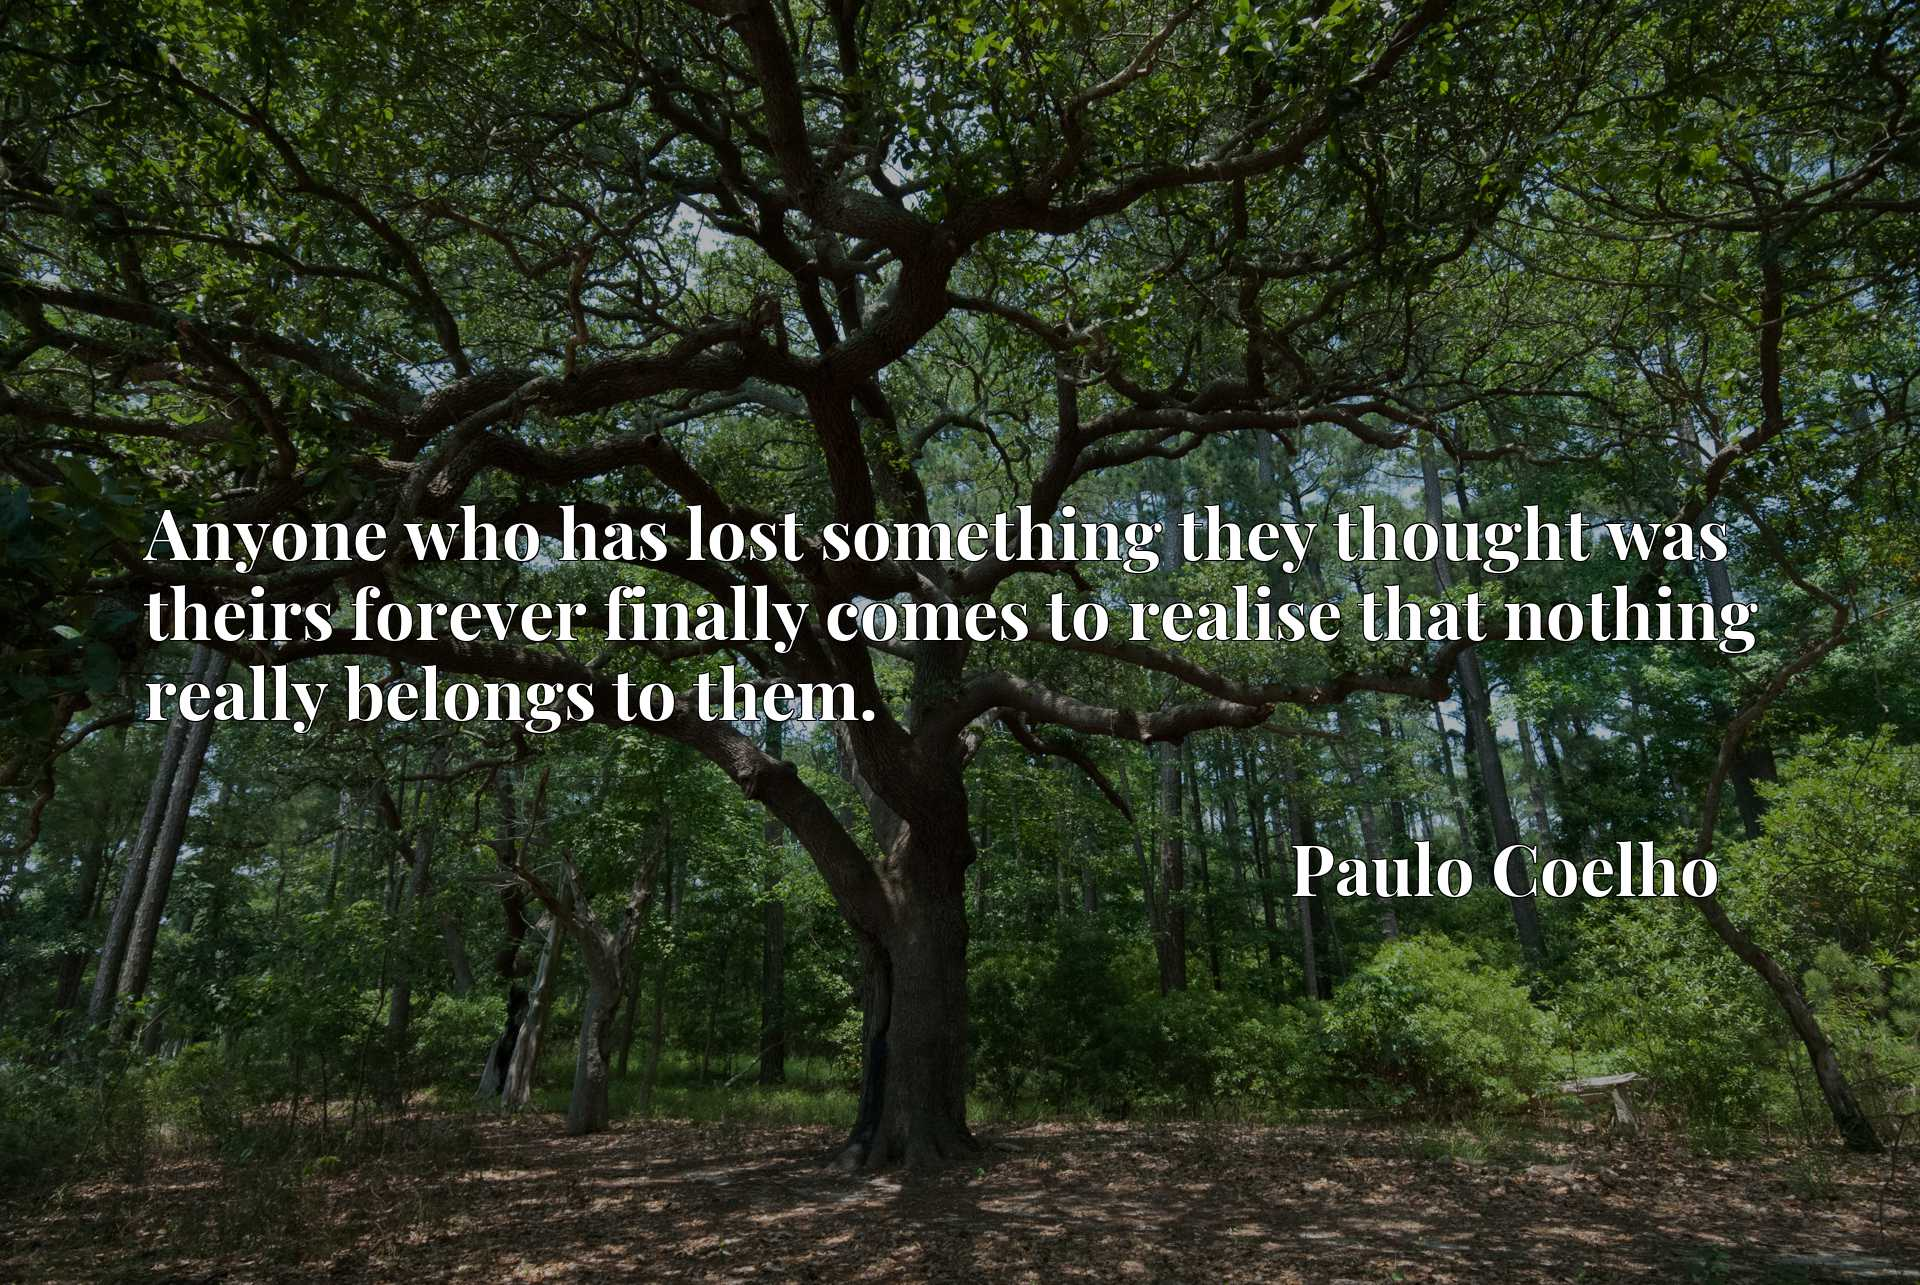 Quote Picture :Anyone who has lost something they thought was theirs forever finally comes to realise that nothing really belongs to them.